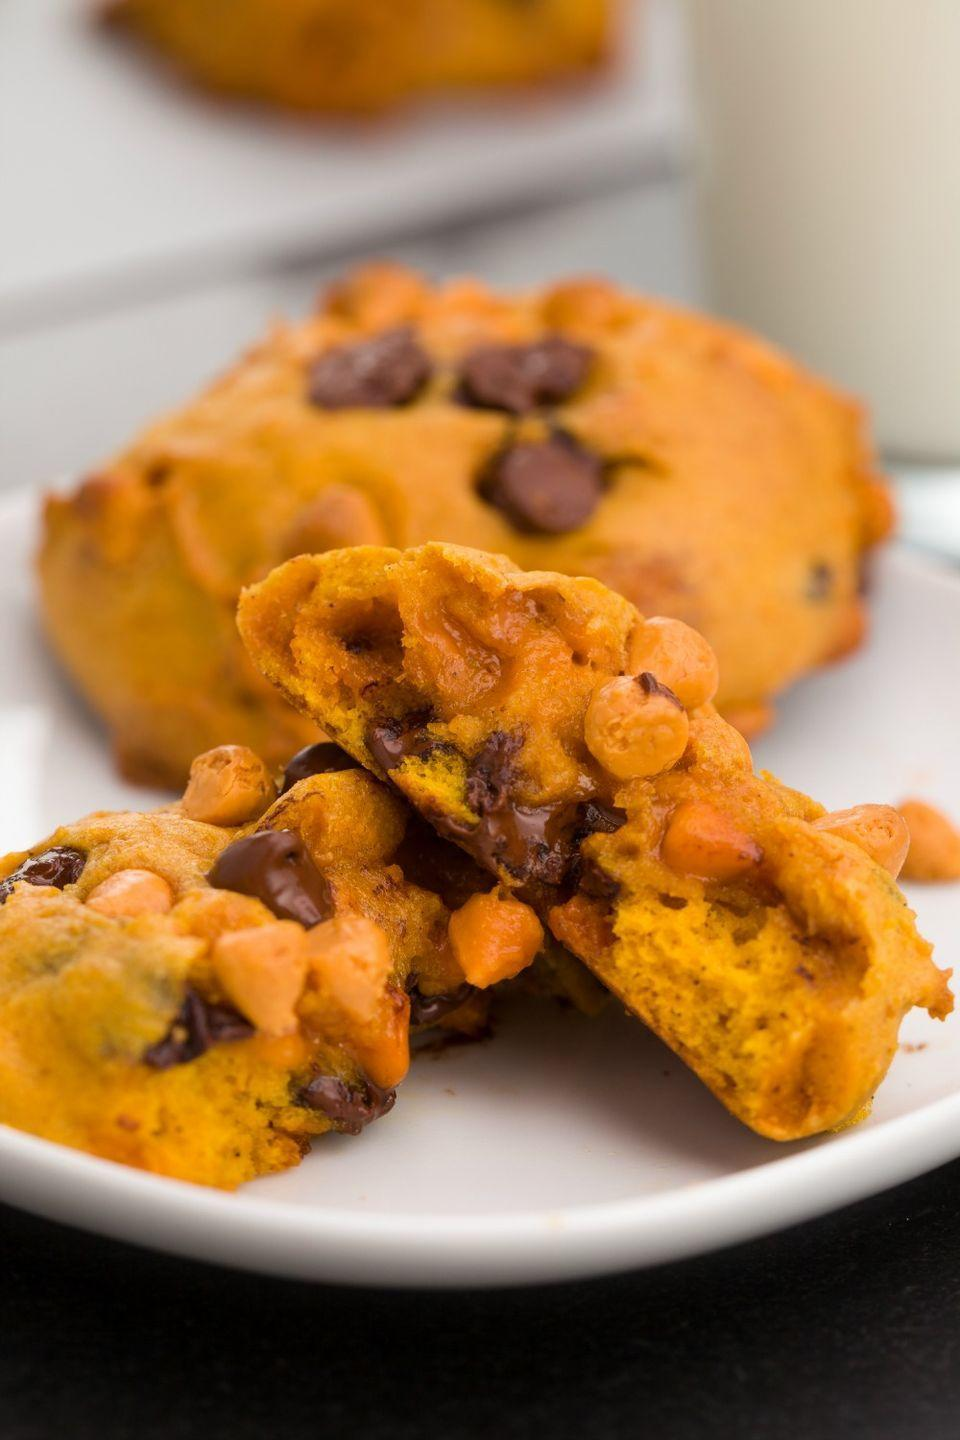 """<p>Because pumpkin loves chocolate—but it loves butterscotch even more.</p><p>Get the recipe from <a href=""""https://www.delish.com/cooking/recipes/a44396/pumpkin-chocolate-butterscotch-chip-cookies/?visibilityoverride"""" rel=""""nofollow noopener"""" target=""""_blank"""" data-ylk=""""slk:Delish"""" class=""""link rapid-noclick-resp"""">Delish</a>.</p>"""